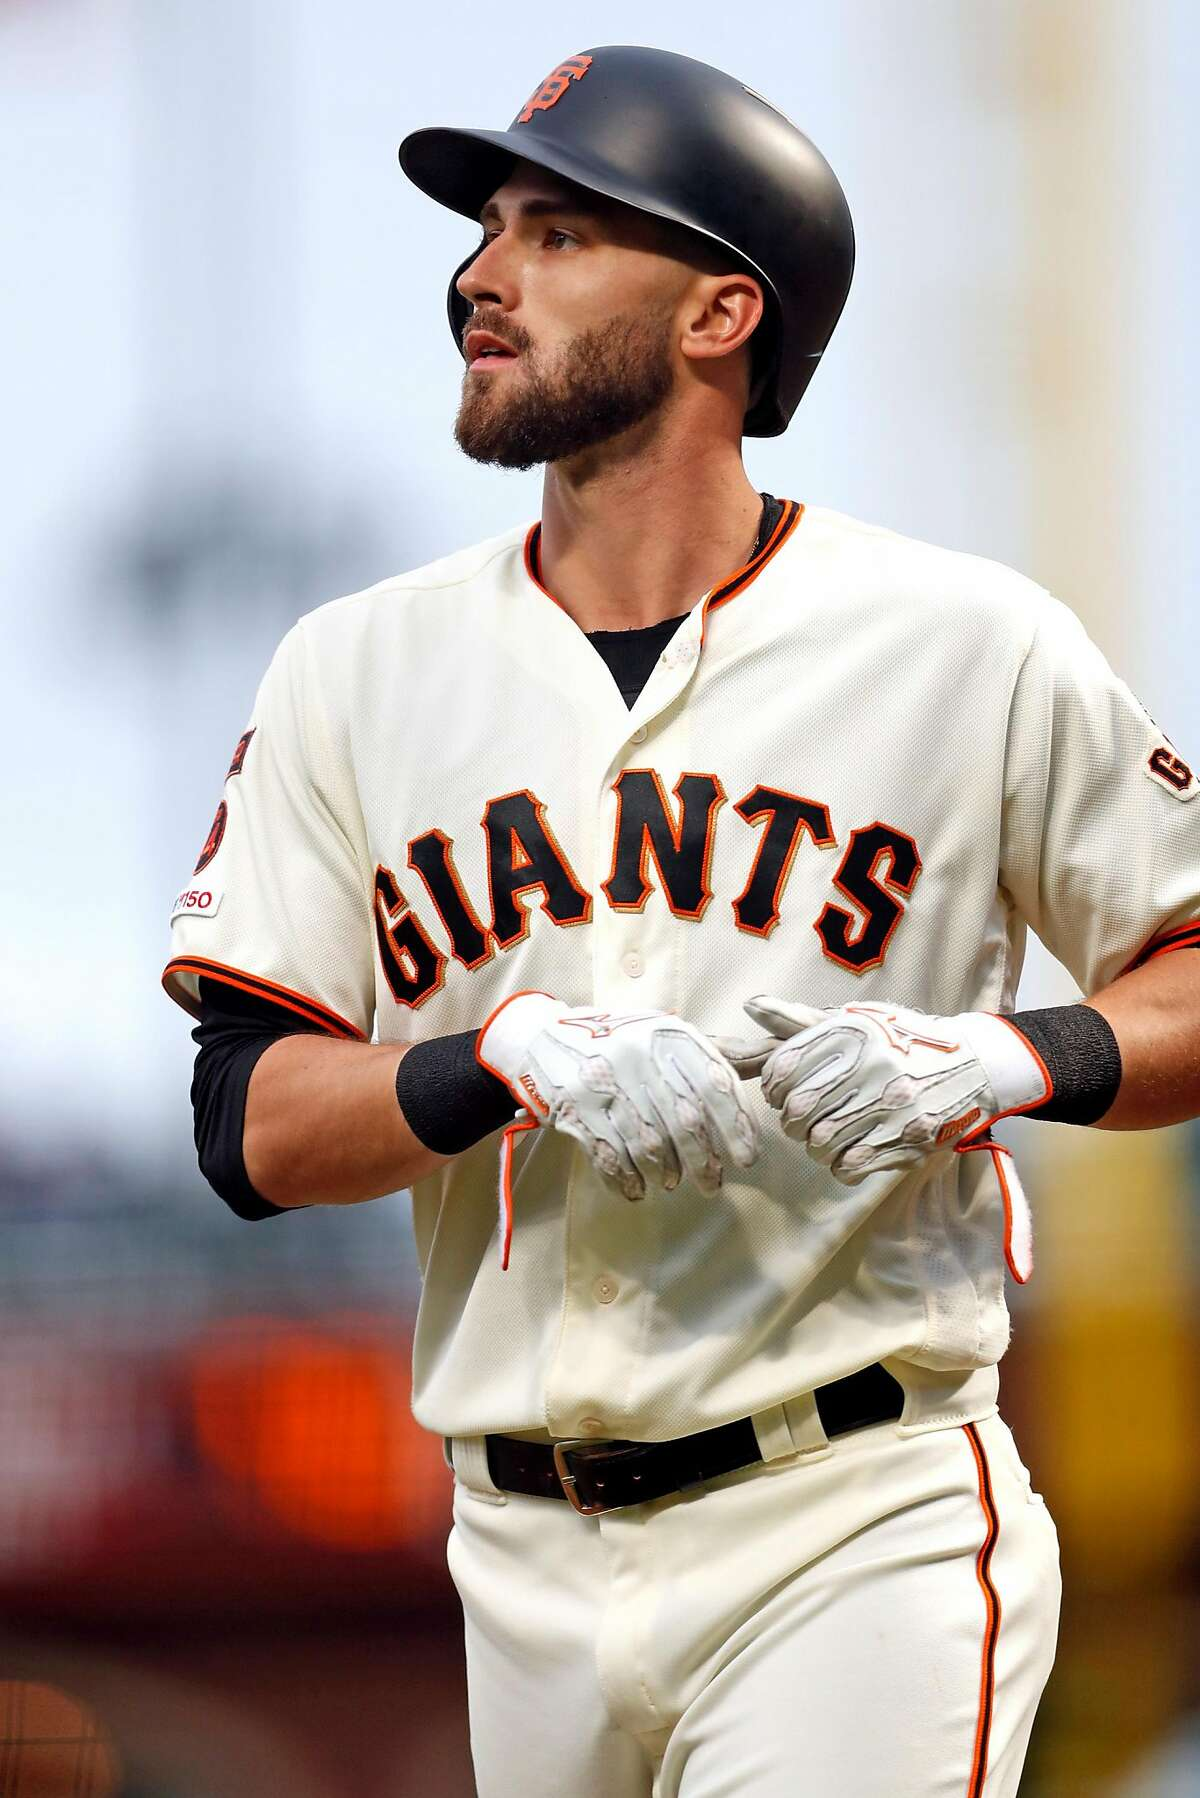 San Francisco Giants' right fielder Steven Duggar reacts to lining out in 1st inning against San Diego Padres during MLB game at Oracle Park in San Francisco, Calif., on Monday, April 8, 2019.